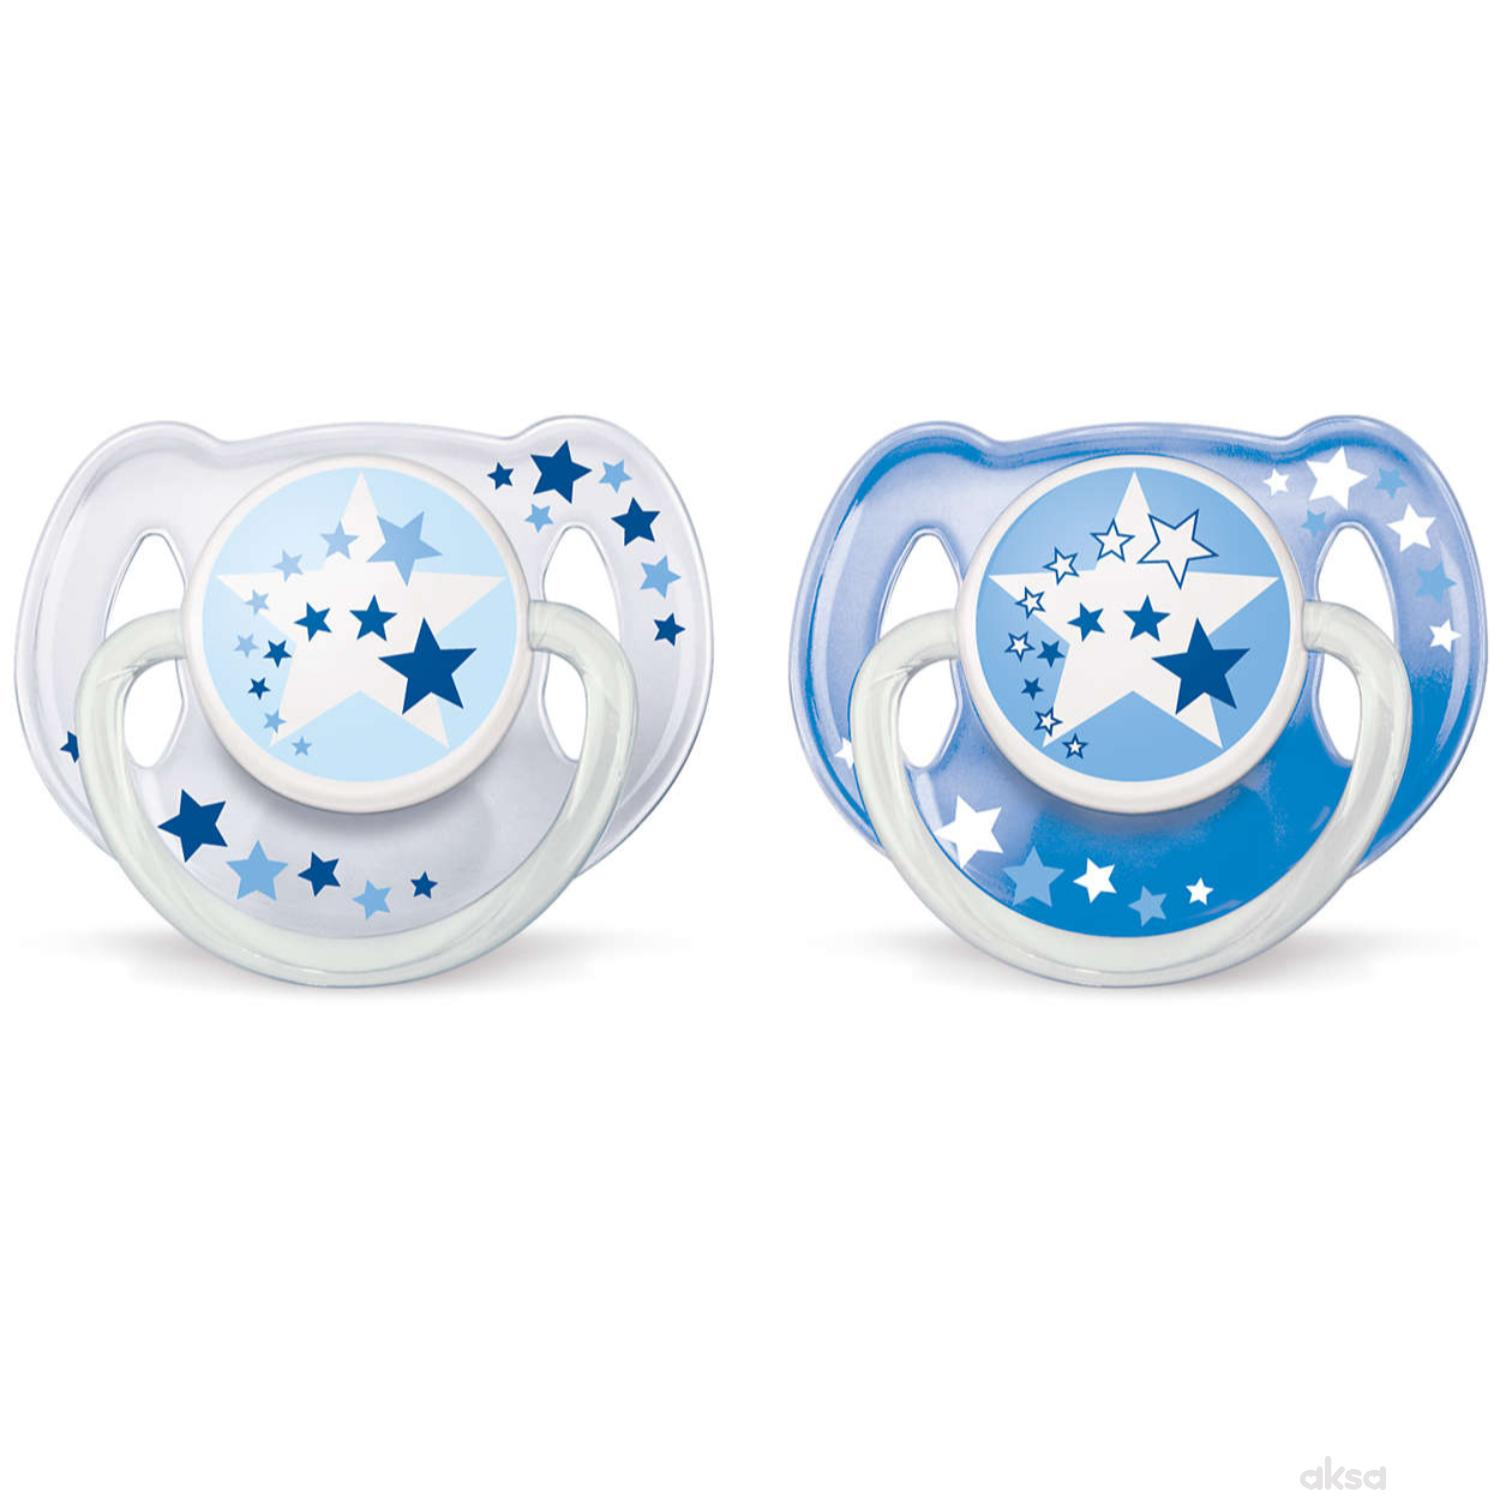 Avent laža noćna Night time pacifier 6-18 2/1 plav